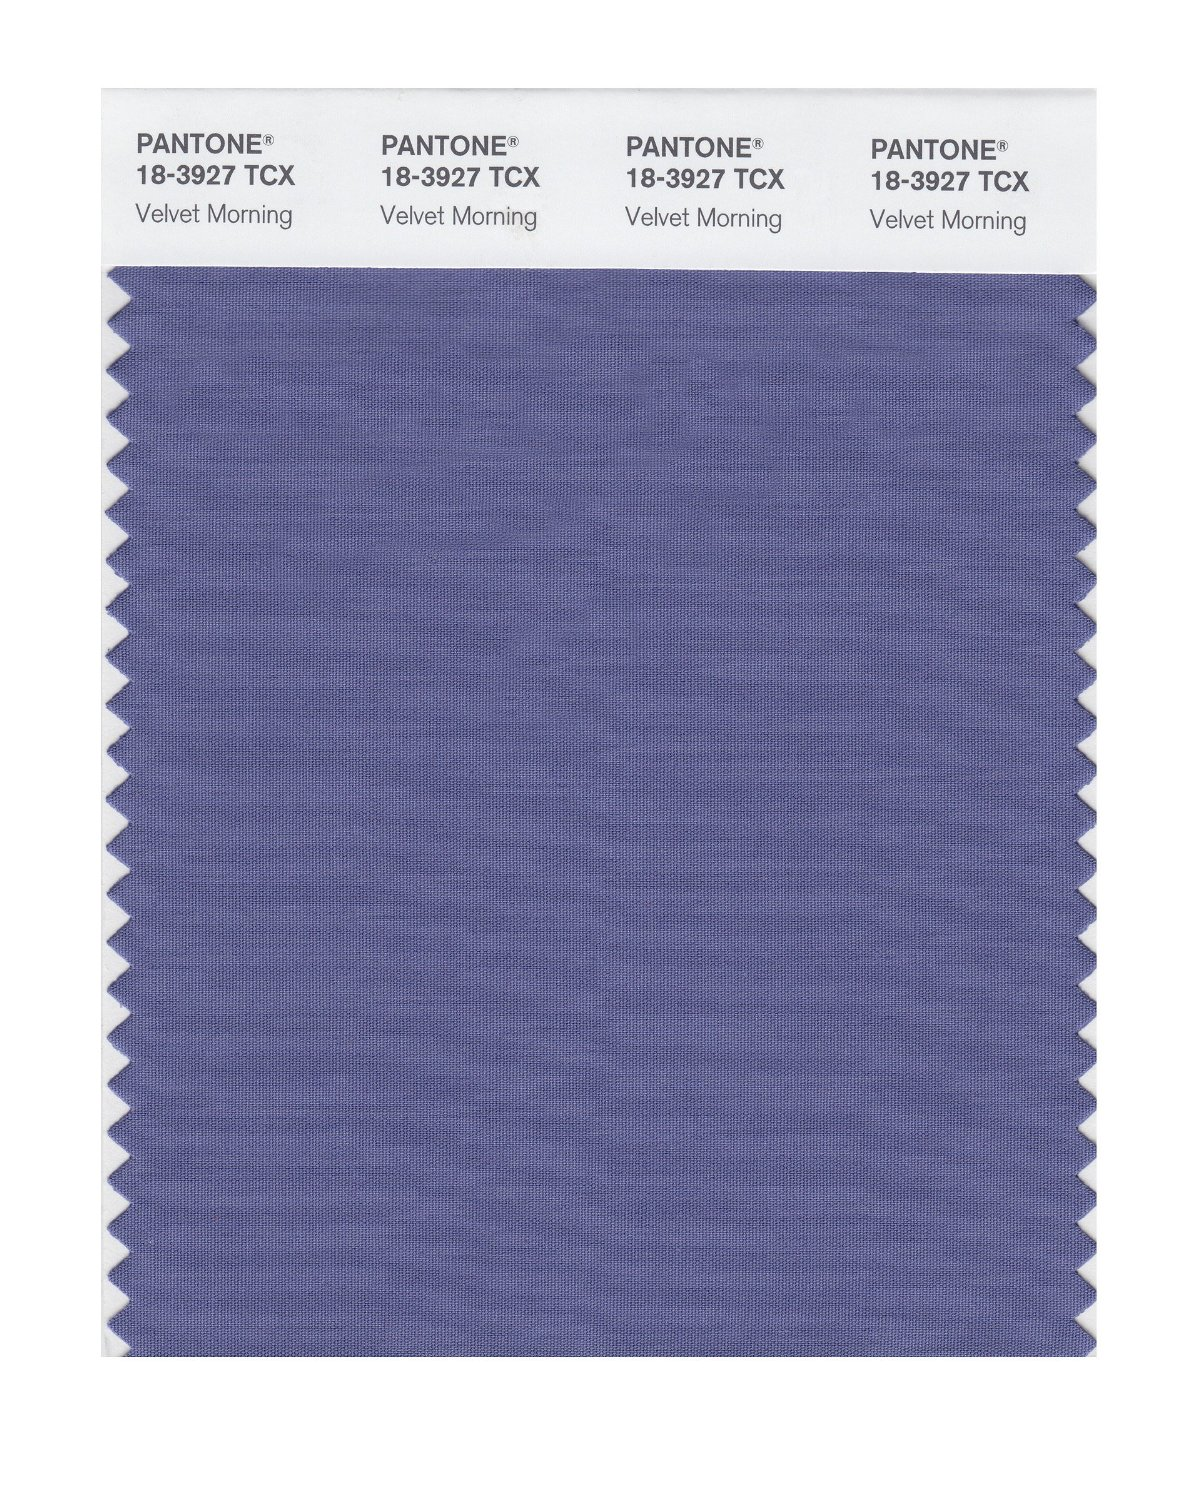 Pantone Smart Swatch 18-3927 Velvet Morning